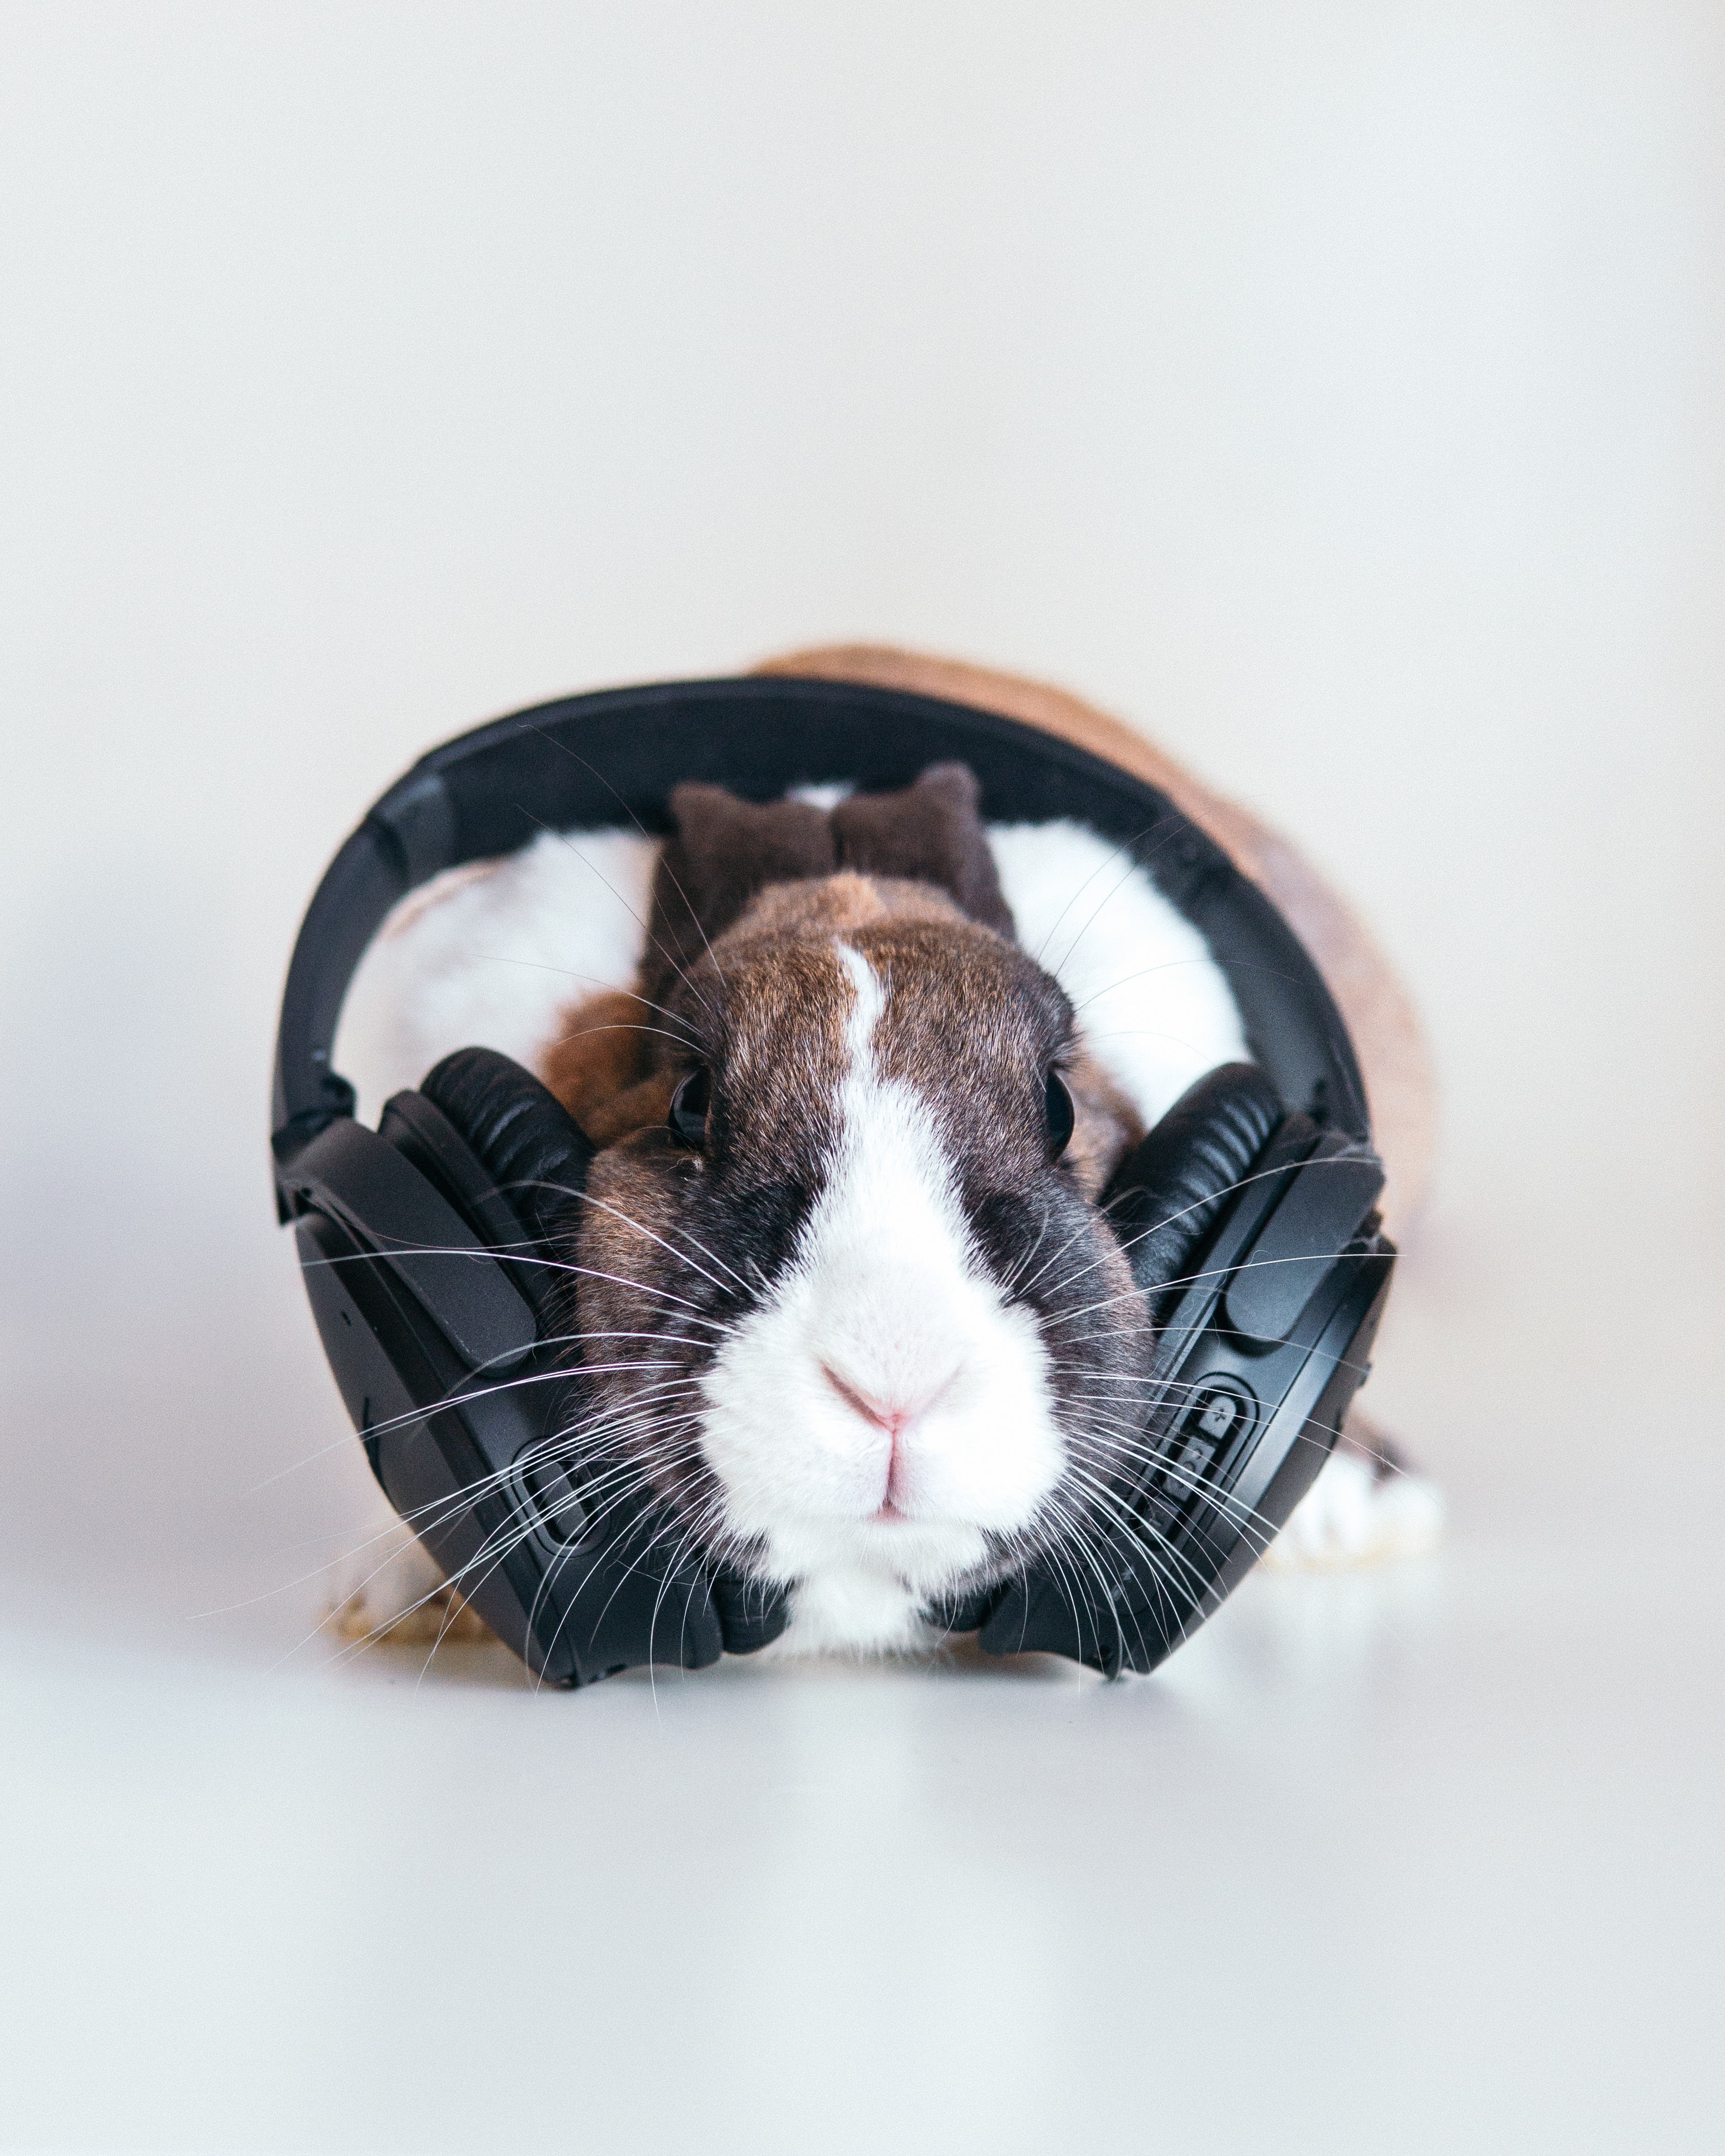 brown and white rabbit with black headphones